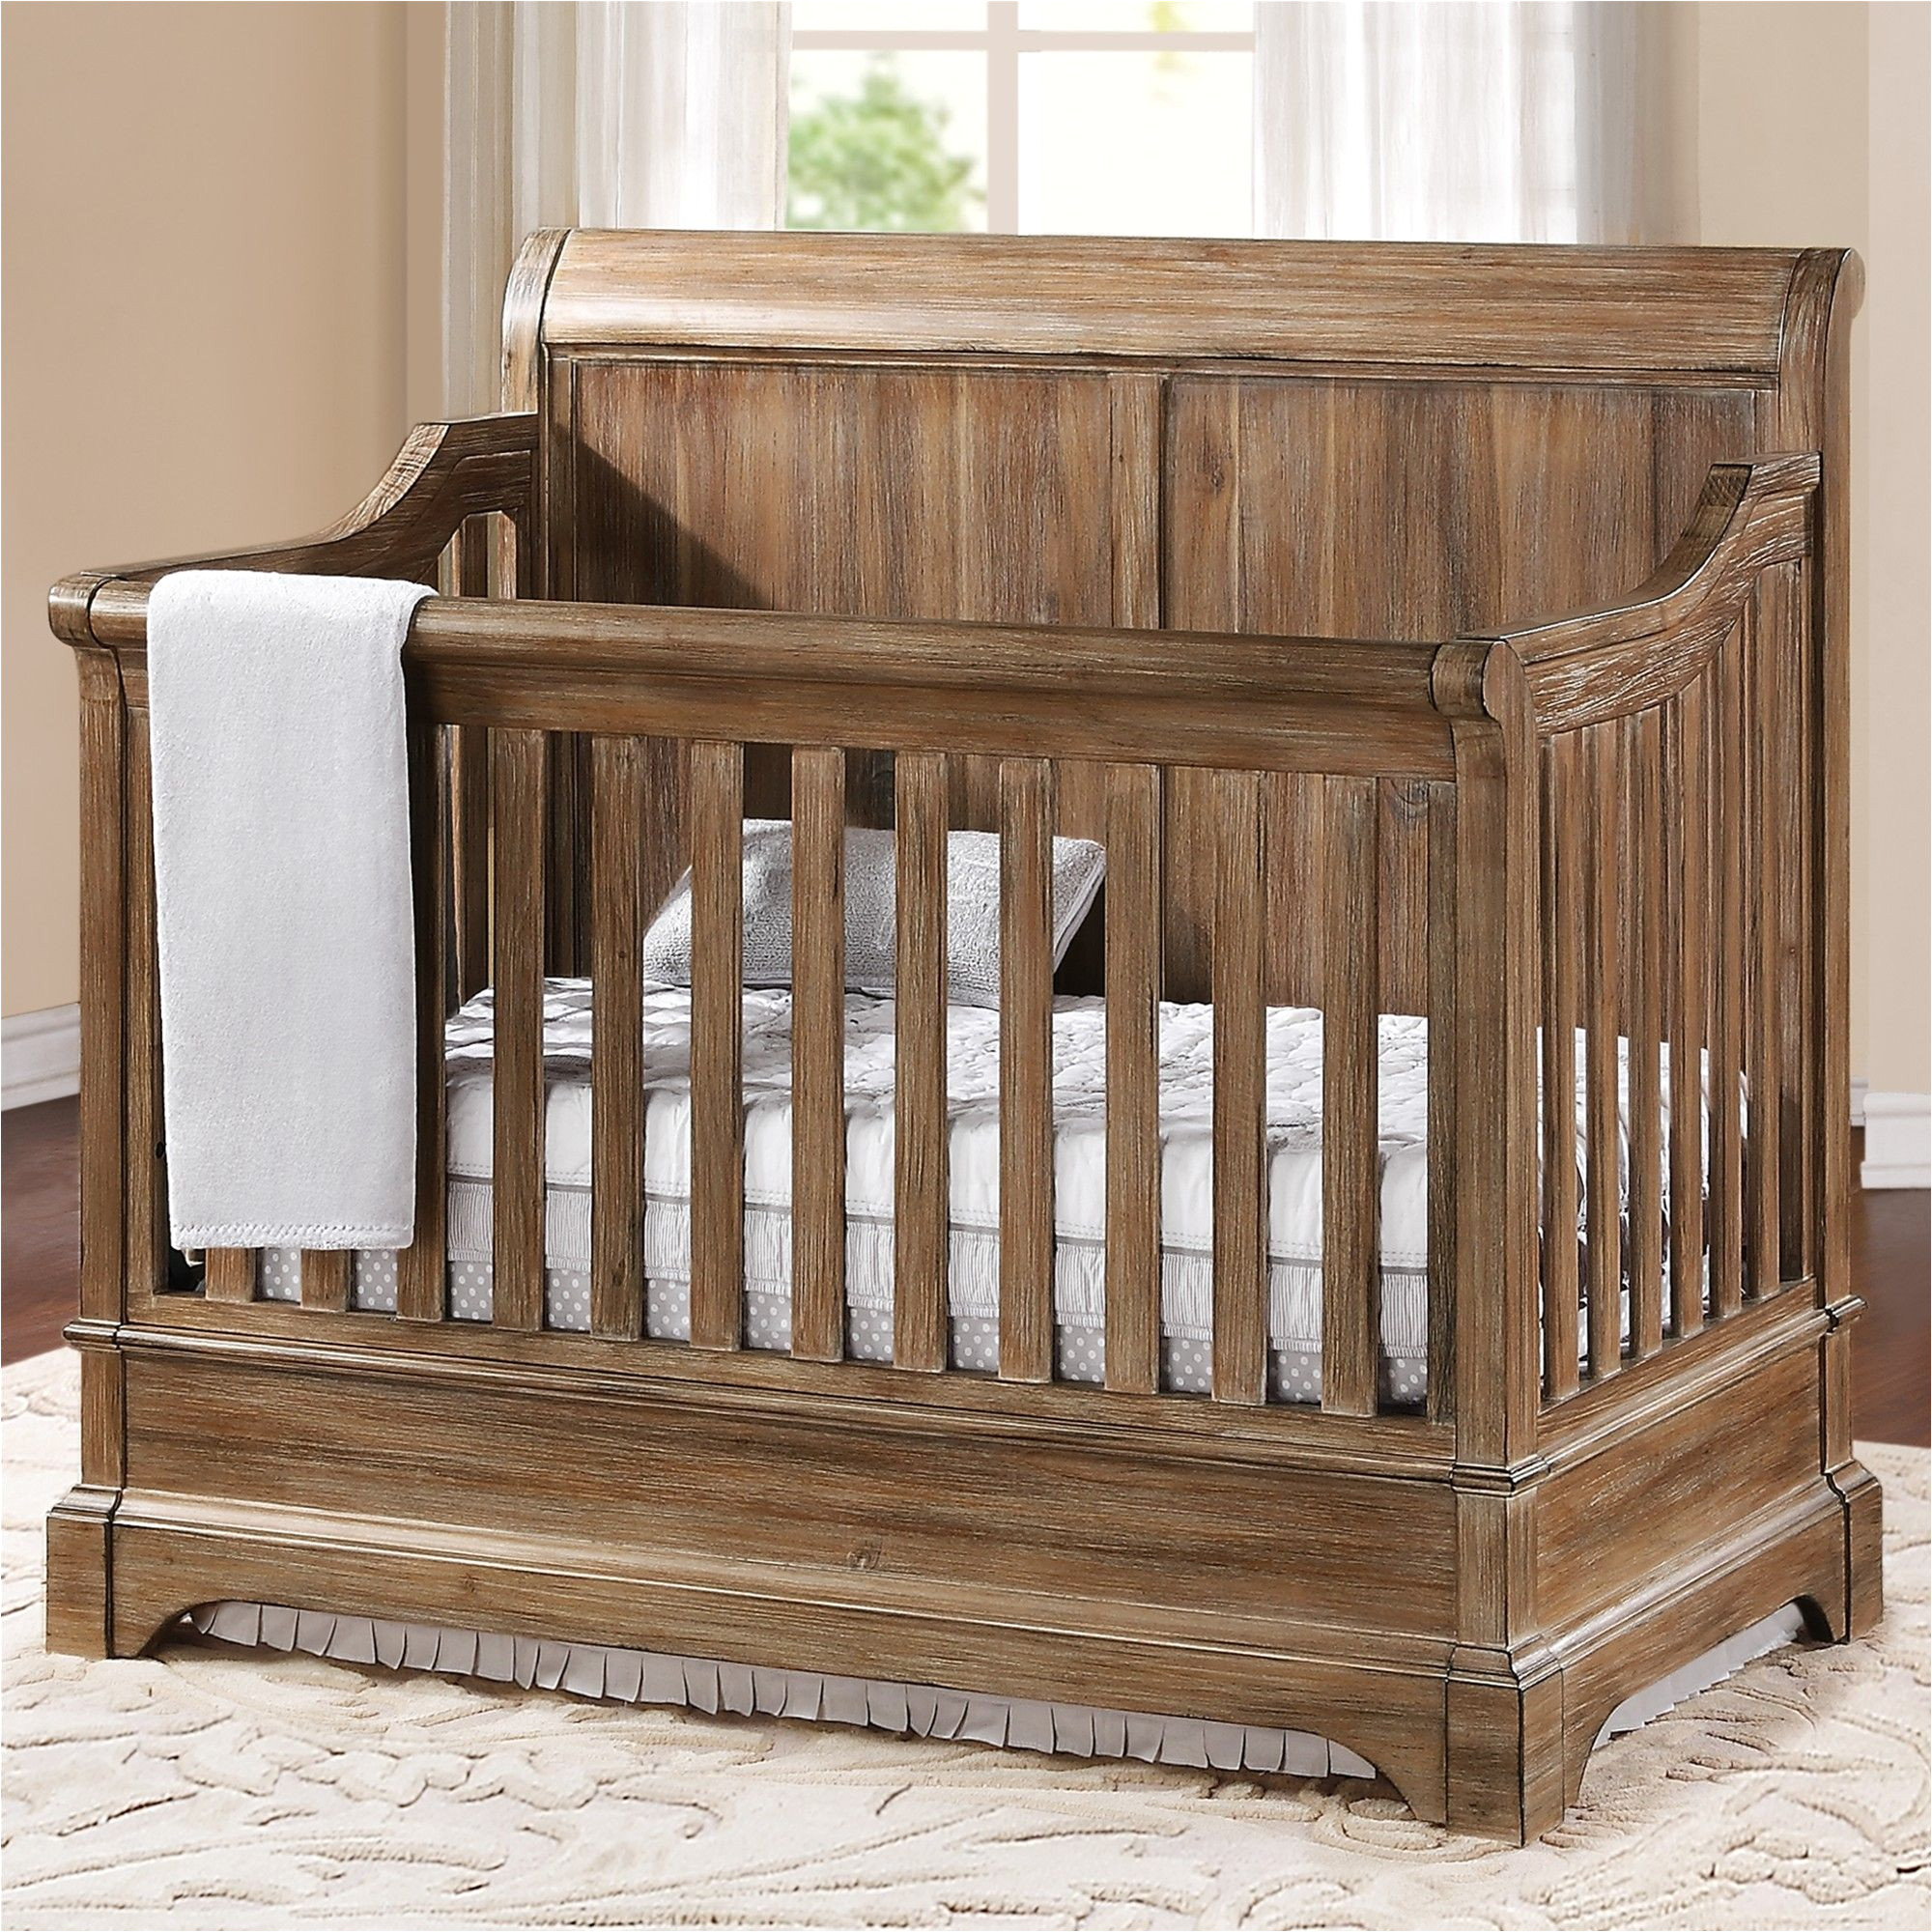 amusing rustic baby cribs amazing rustic baby convertible cribs with wood material and window treatment plus bedding sets